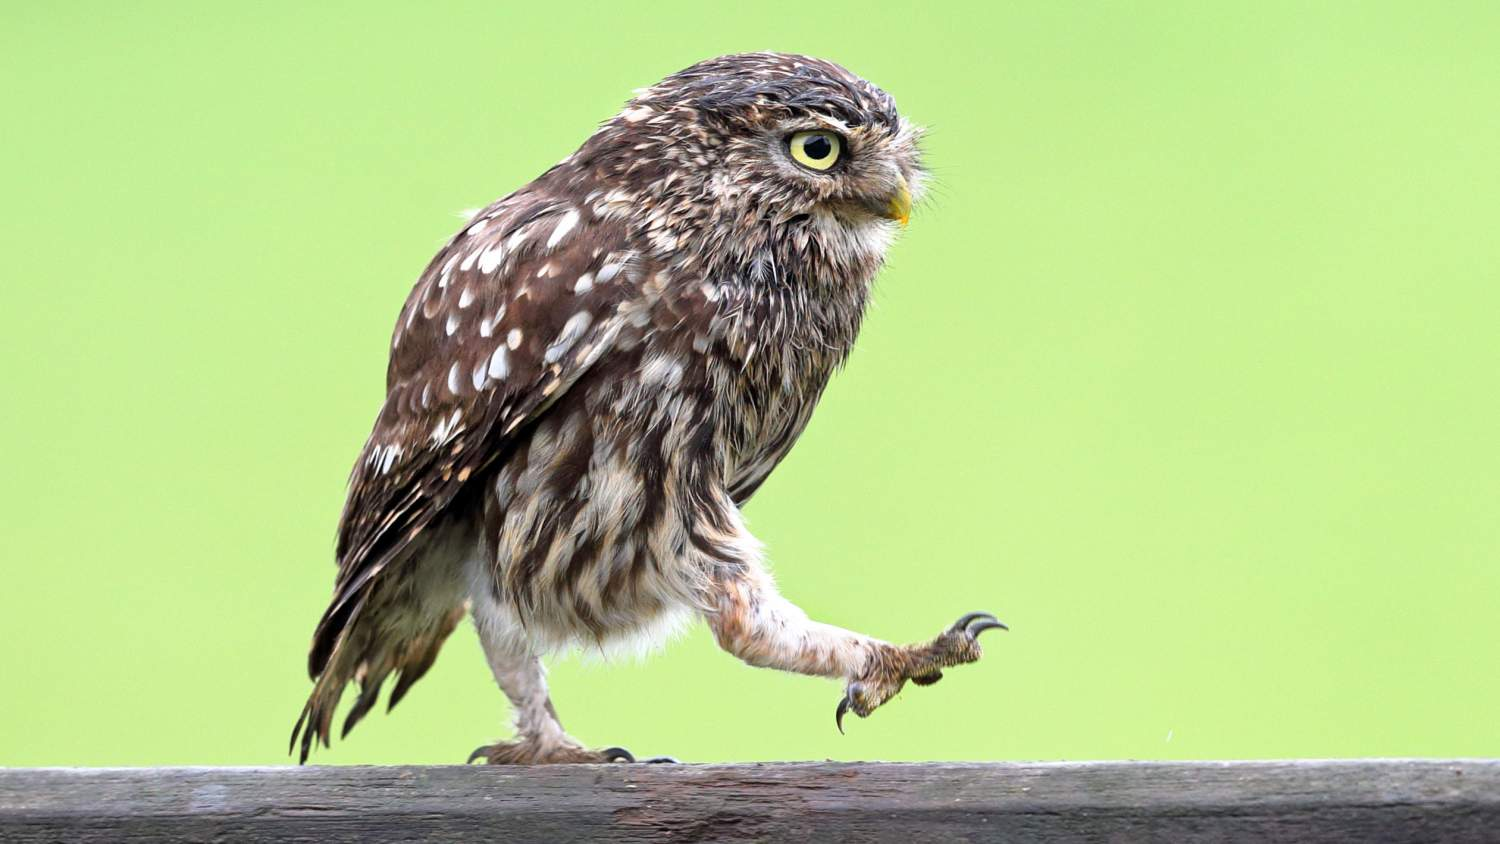 Burrowing owl strutting on a branch